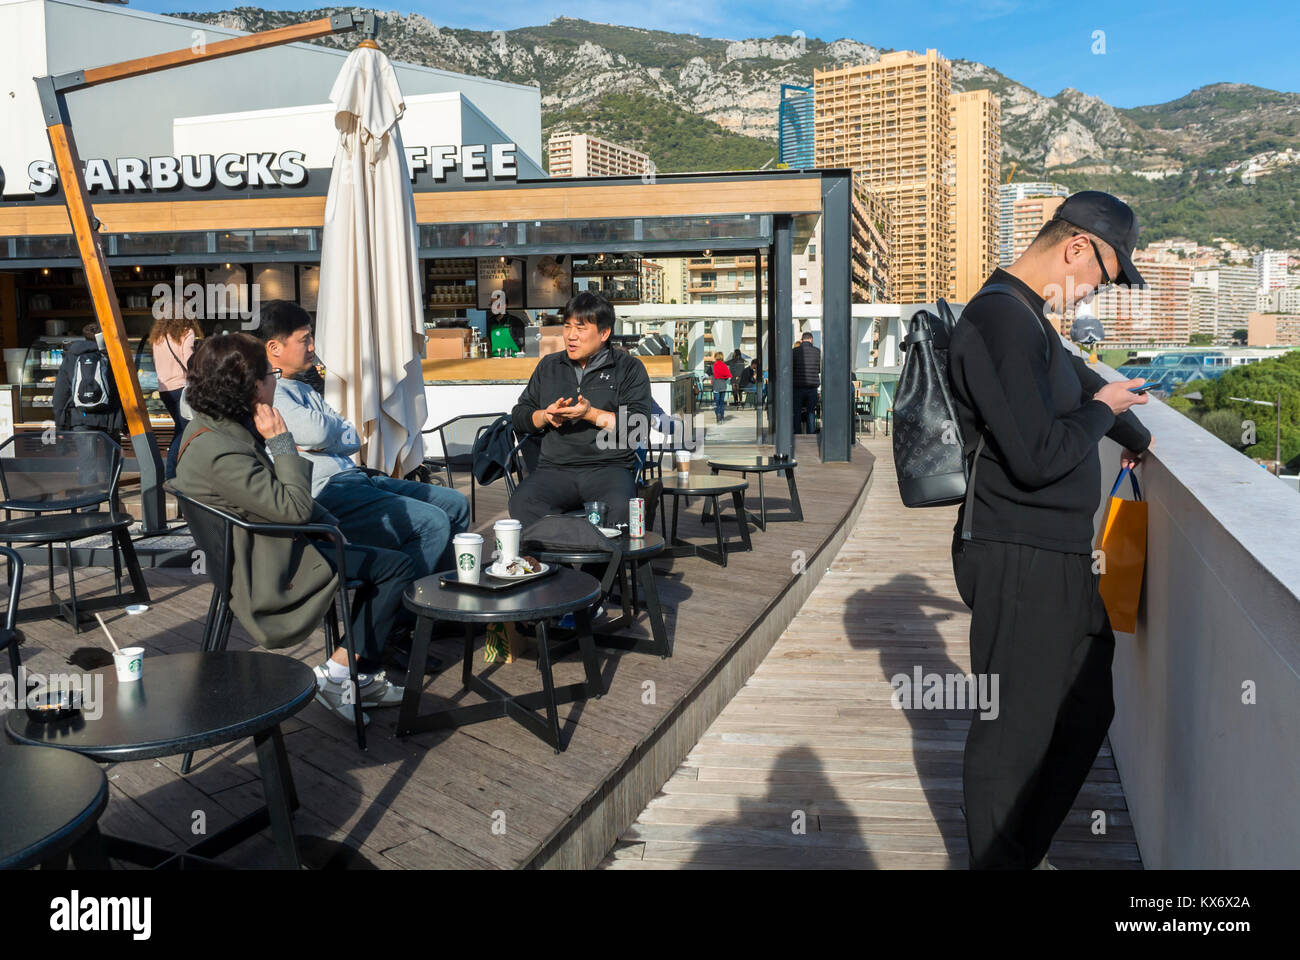 Monaco, Monte Carlo, Chinese Tourists sharing Drinks at Starbuck's Cafe Restaurant Terrace Sidewalk near Sea - Stock Image